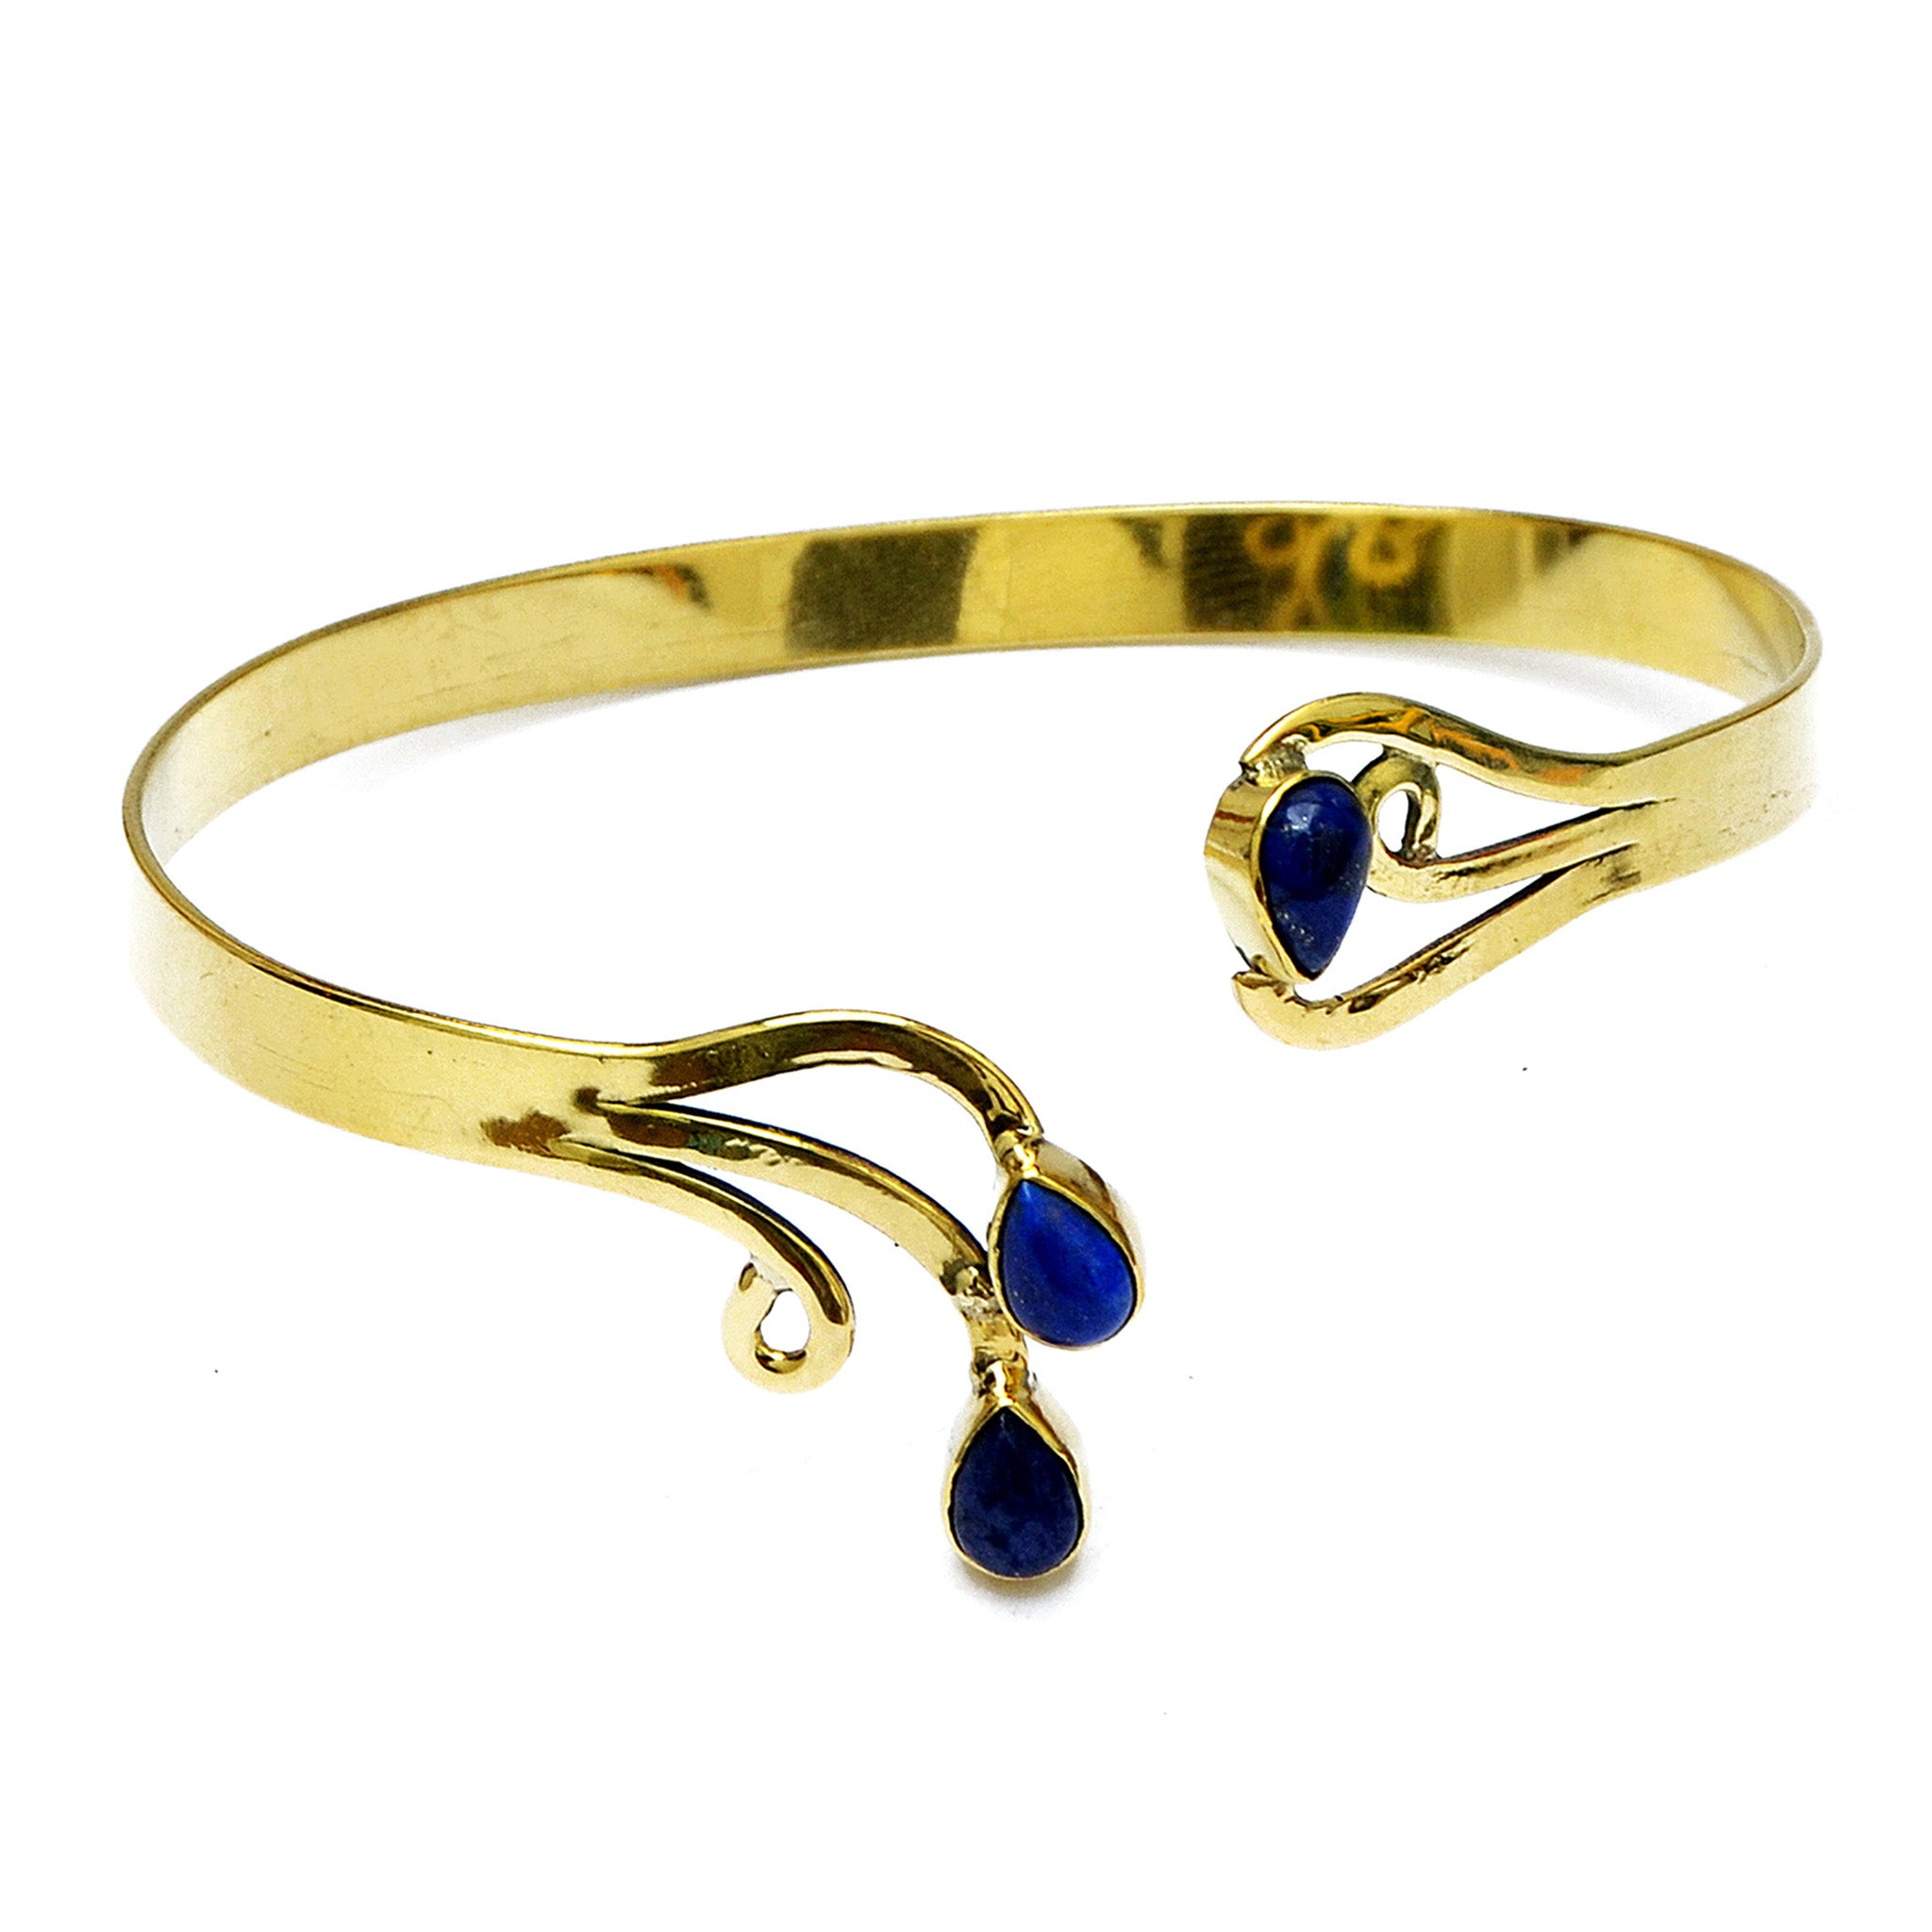 Ethnic bracelet with lapis